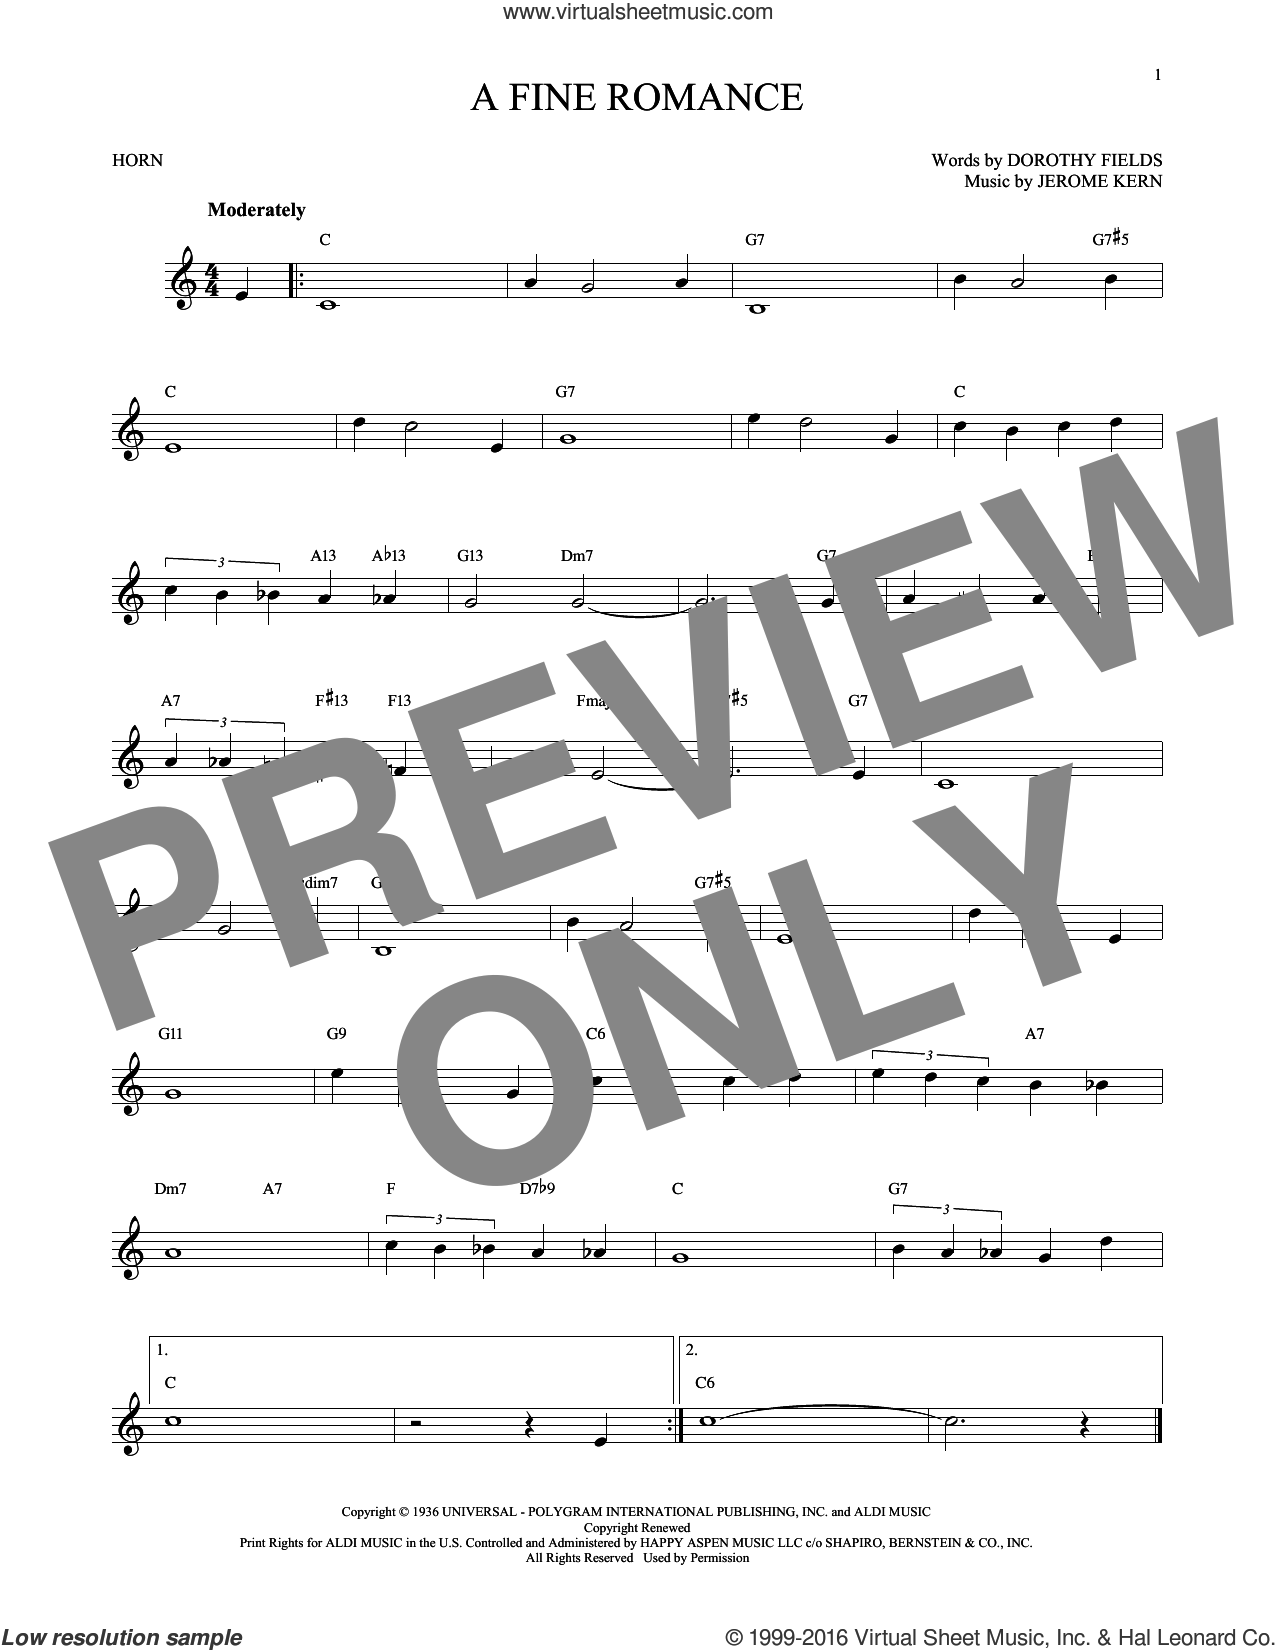 A Fine Romance sheet music for horn solo by Jerome Kern and Dorothy Fields, intermediate skill level